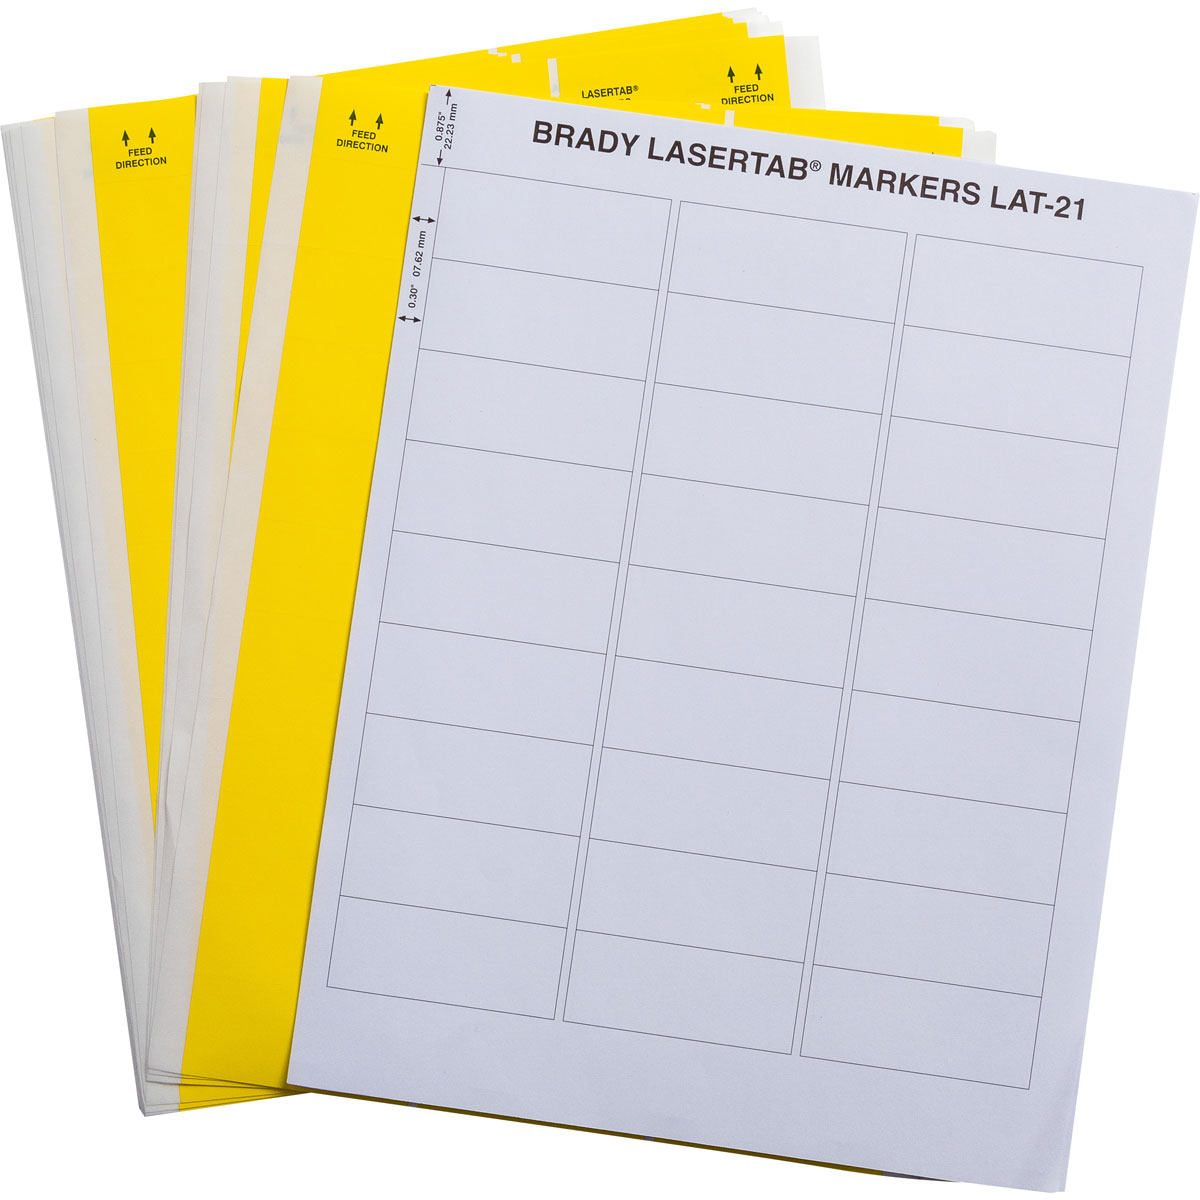 brady label templates brady part lat 21 747 1 yl lasertab laser printable labels